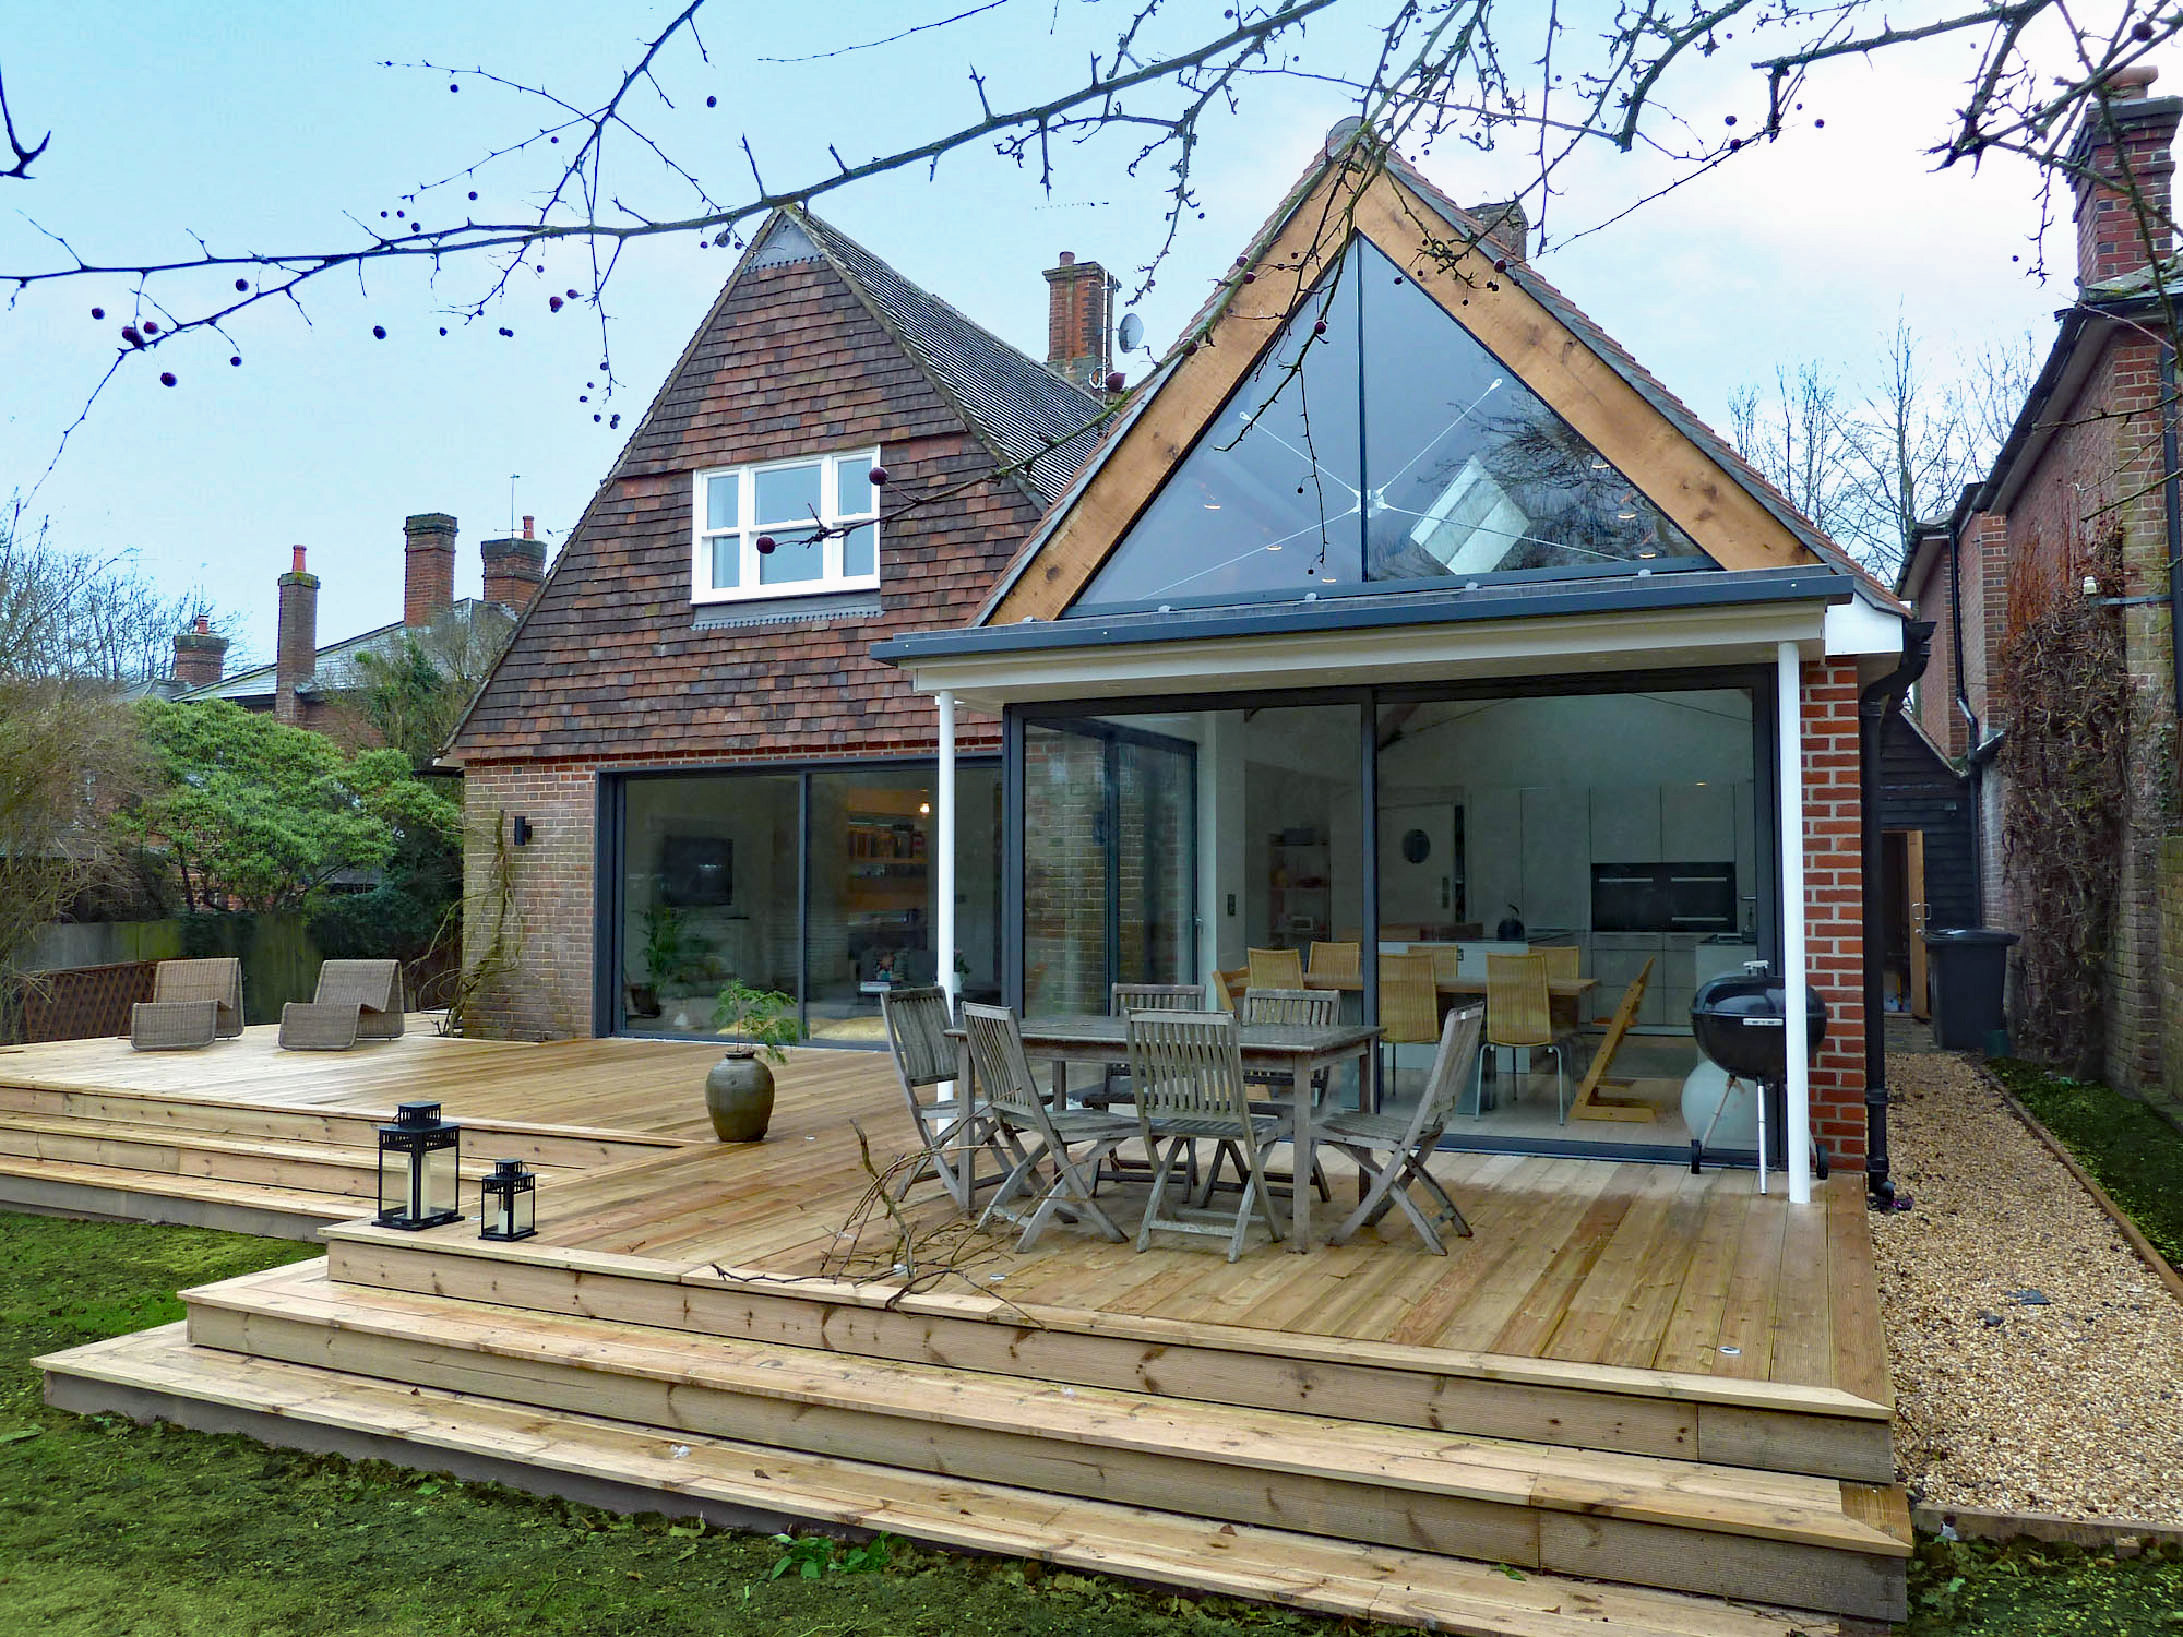 </p> <p>Find your ideal home design pro on designfor-me.com - get matched and see who's interested in your home project. Click image to see more inspiration from our design pros</p> <p>Design by Jennifer, architectural designer from Waverley, South East</p> <p>#architecture #homedesign #modernhomes #homeinspiration #extensions #extensiondesign #extensioninspiration #extensionideas #houseextension #glazing #architecturalglazing #naturallight #slidingdoors </p> <p>